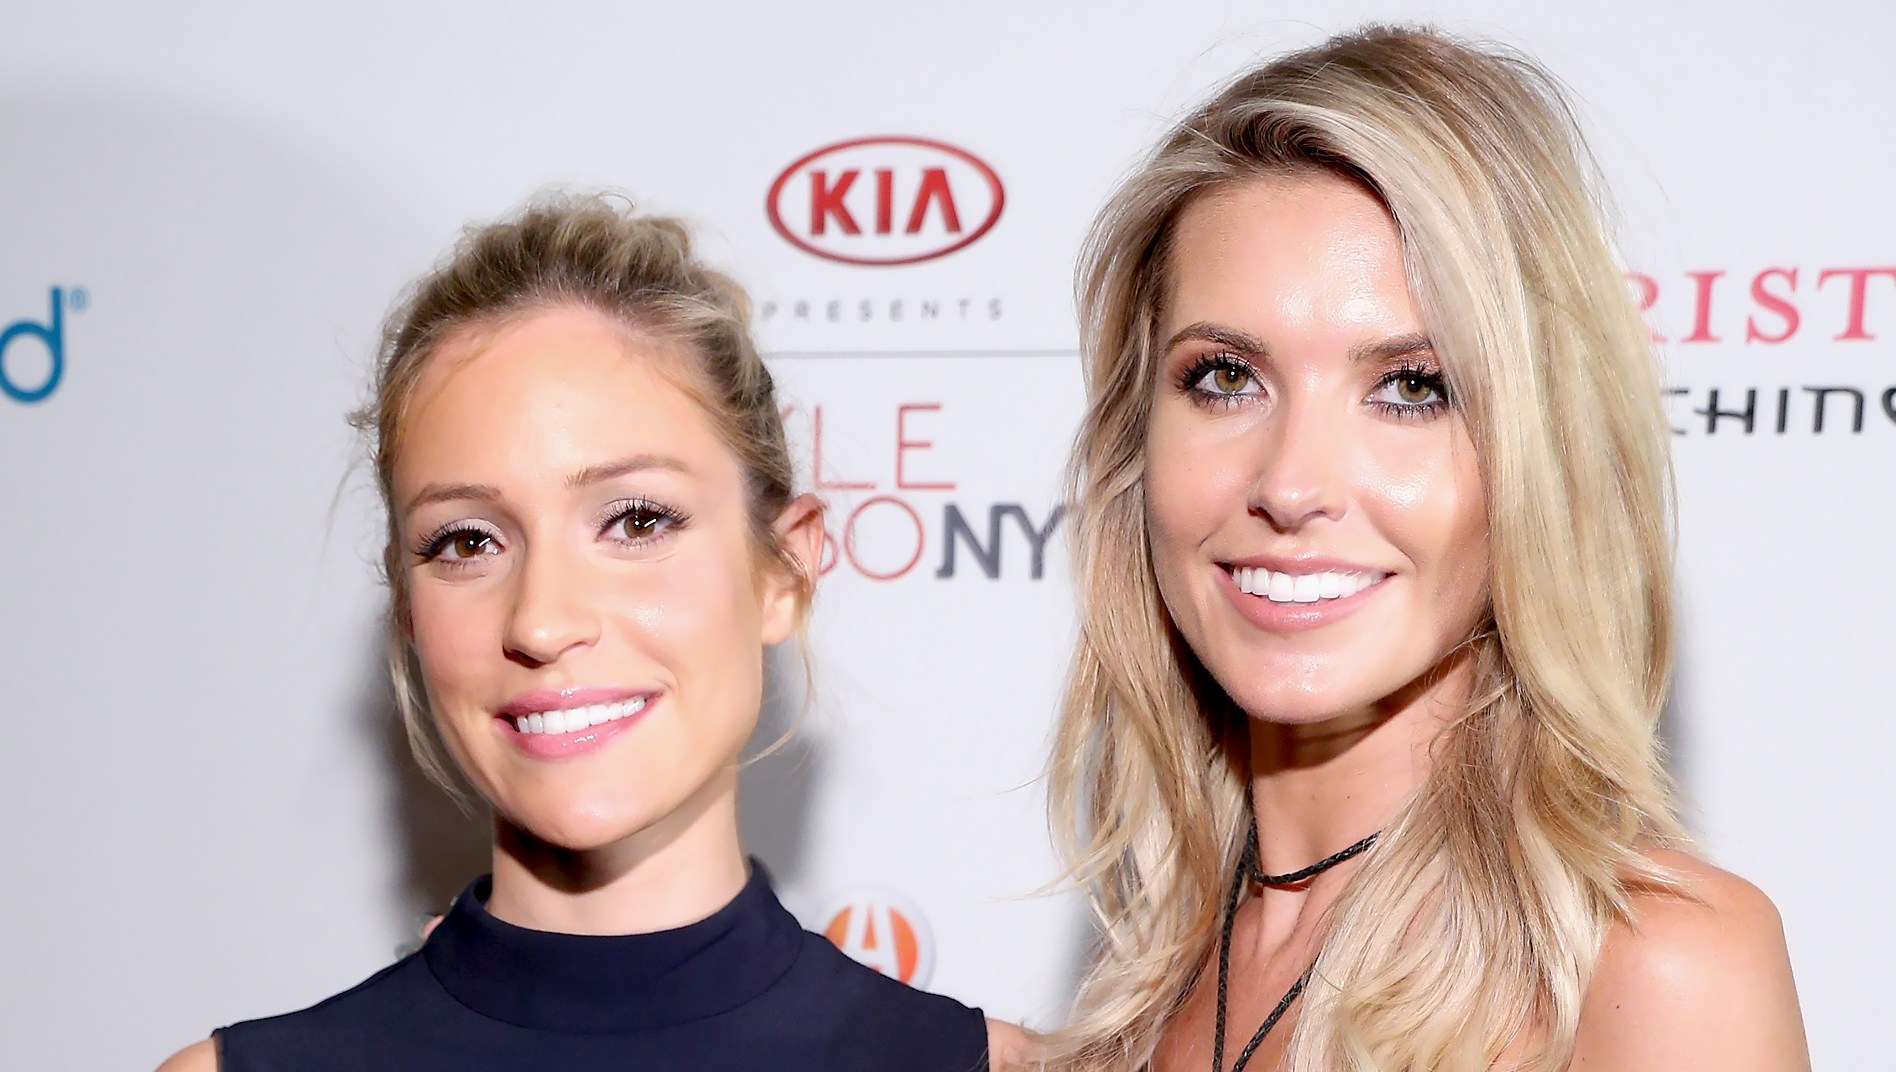 Kristin Cavallari: Audrina Patridge Told Me That Filming 'The Hills: New Beginnings' Has 'Been Hard for Her'